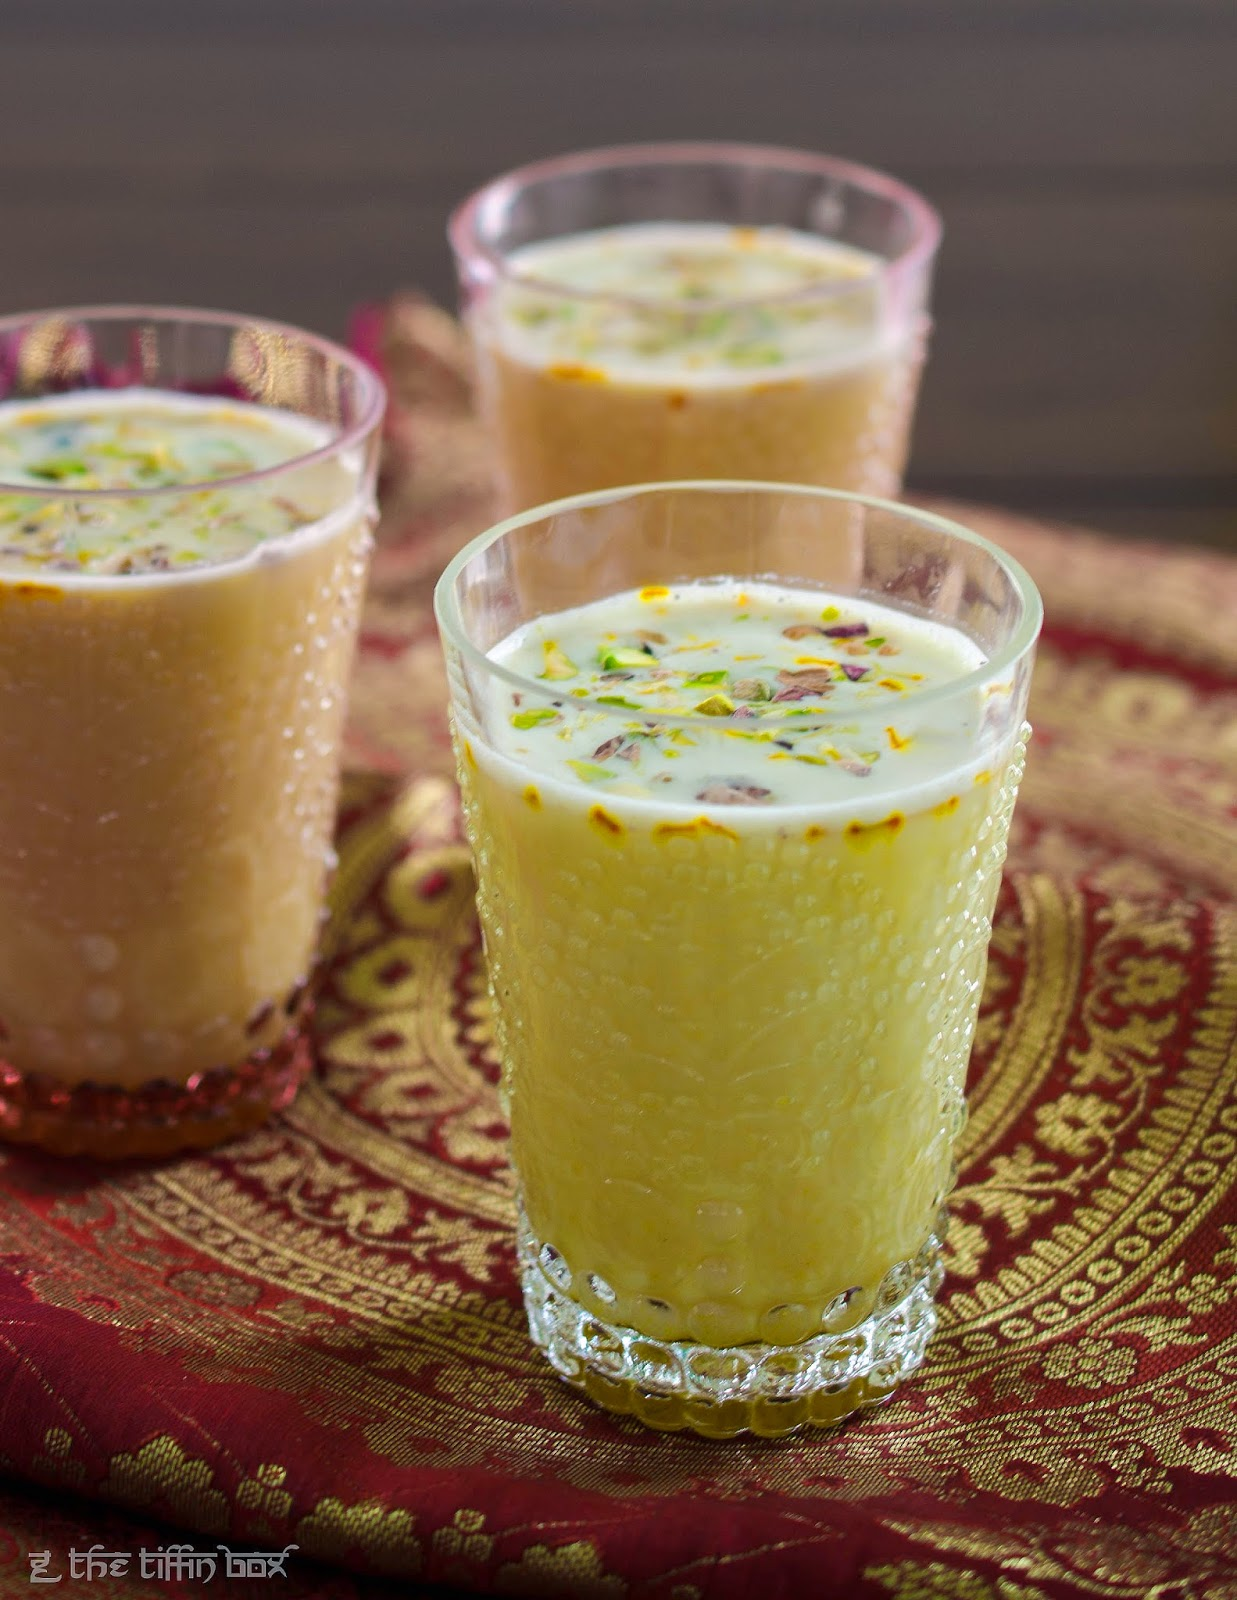 indian festival specials - thandai (spiced chilled milk) for holi